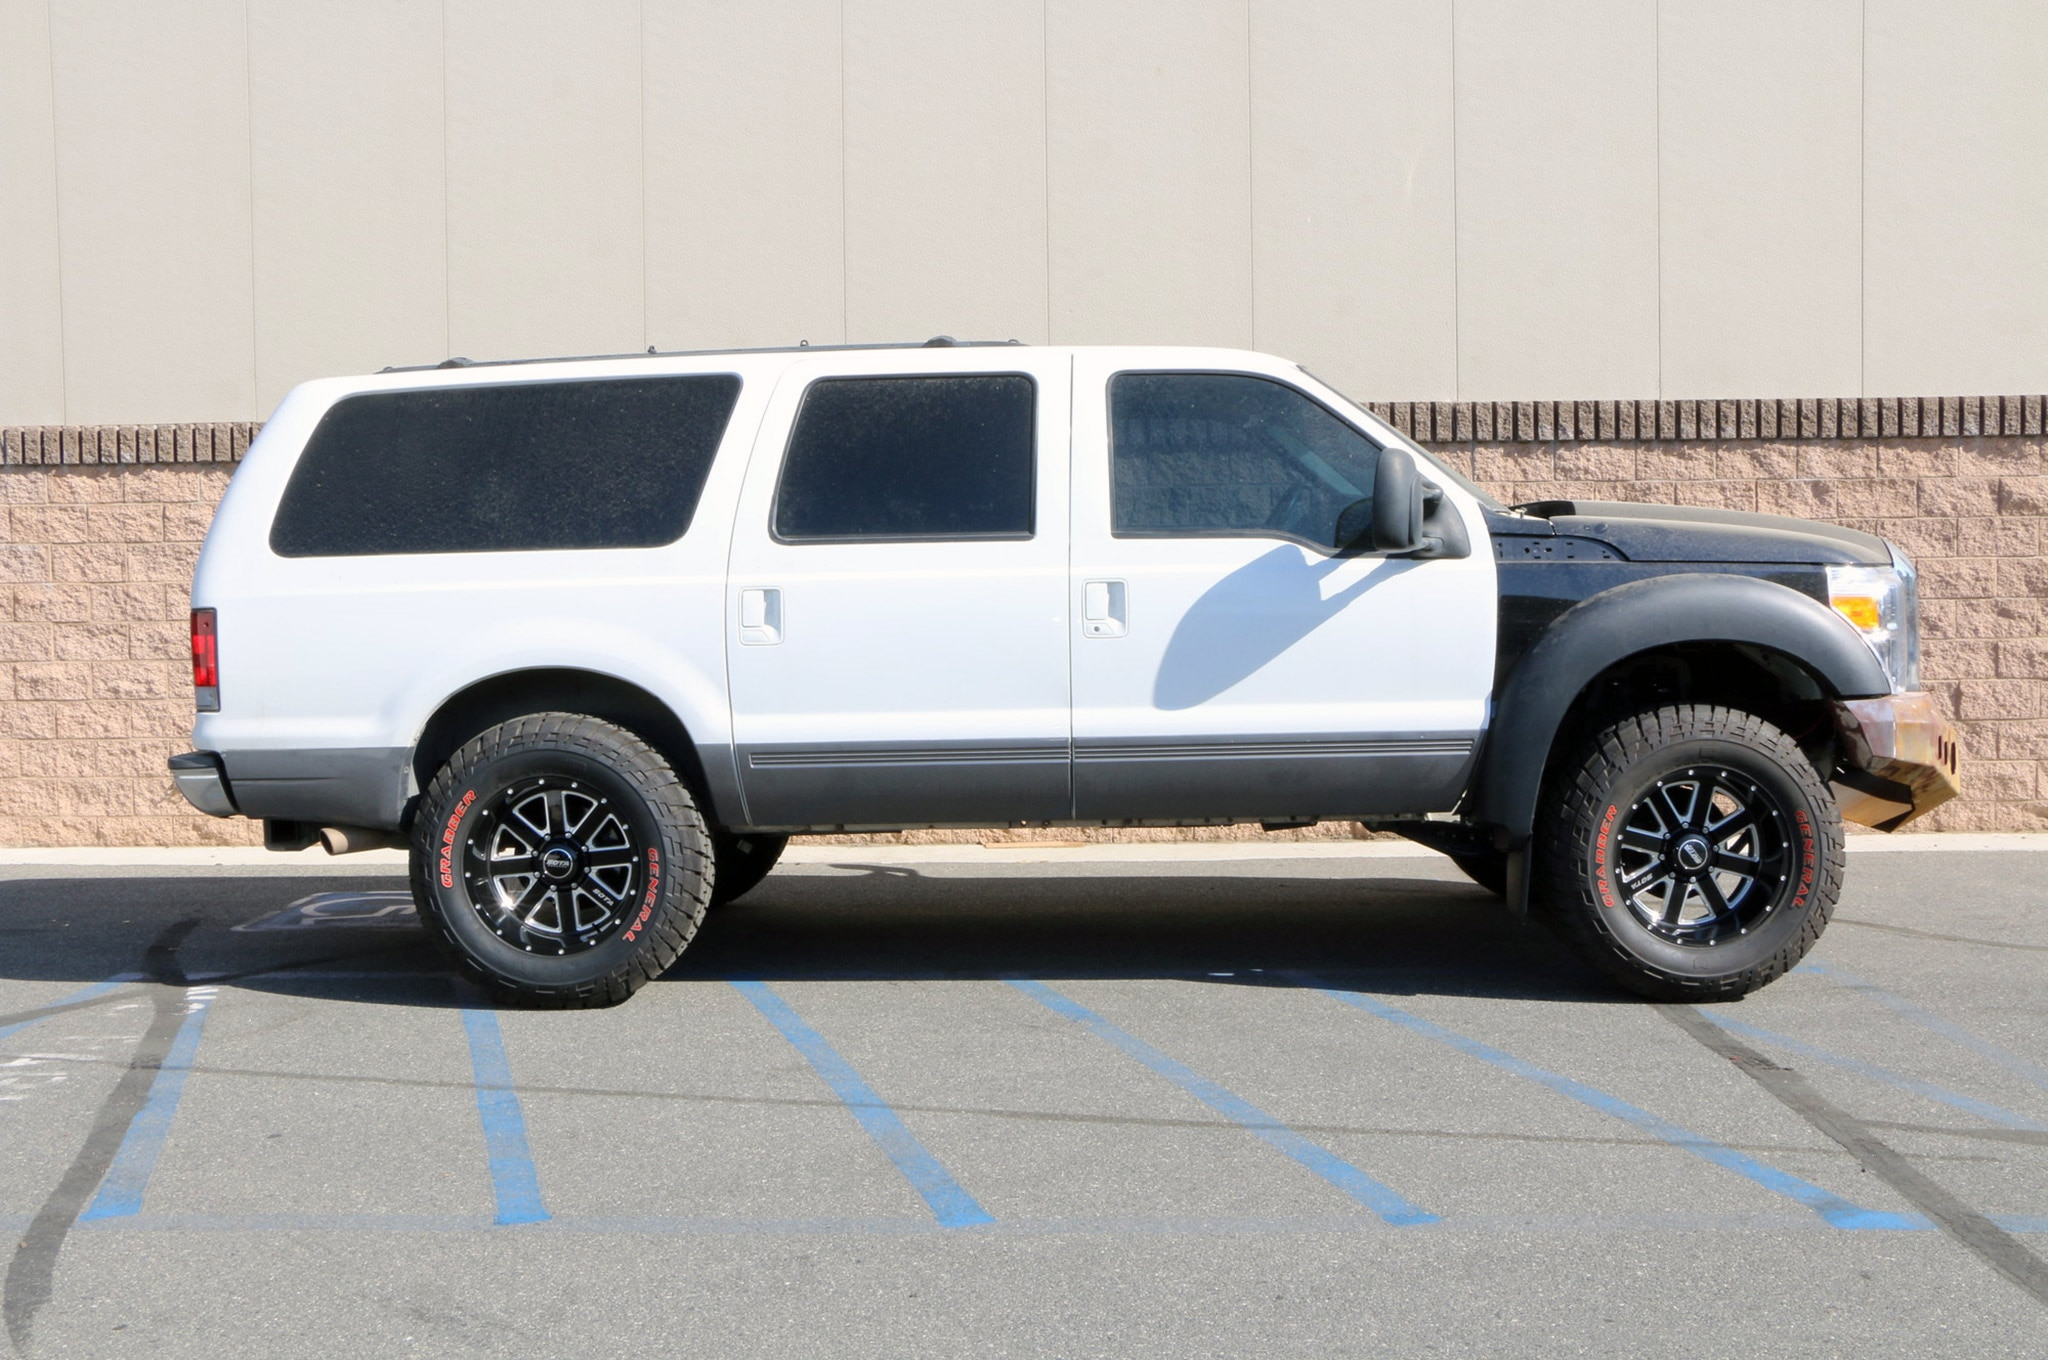 Devious Customs Installs A 6 Inch Fabtech Lift On A 2001 Ford Excursion